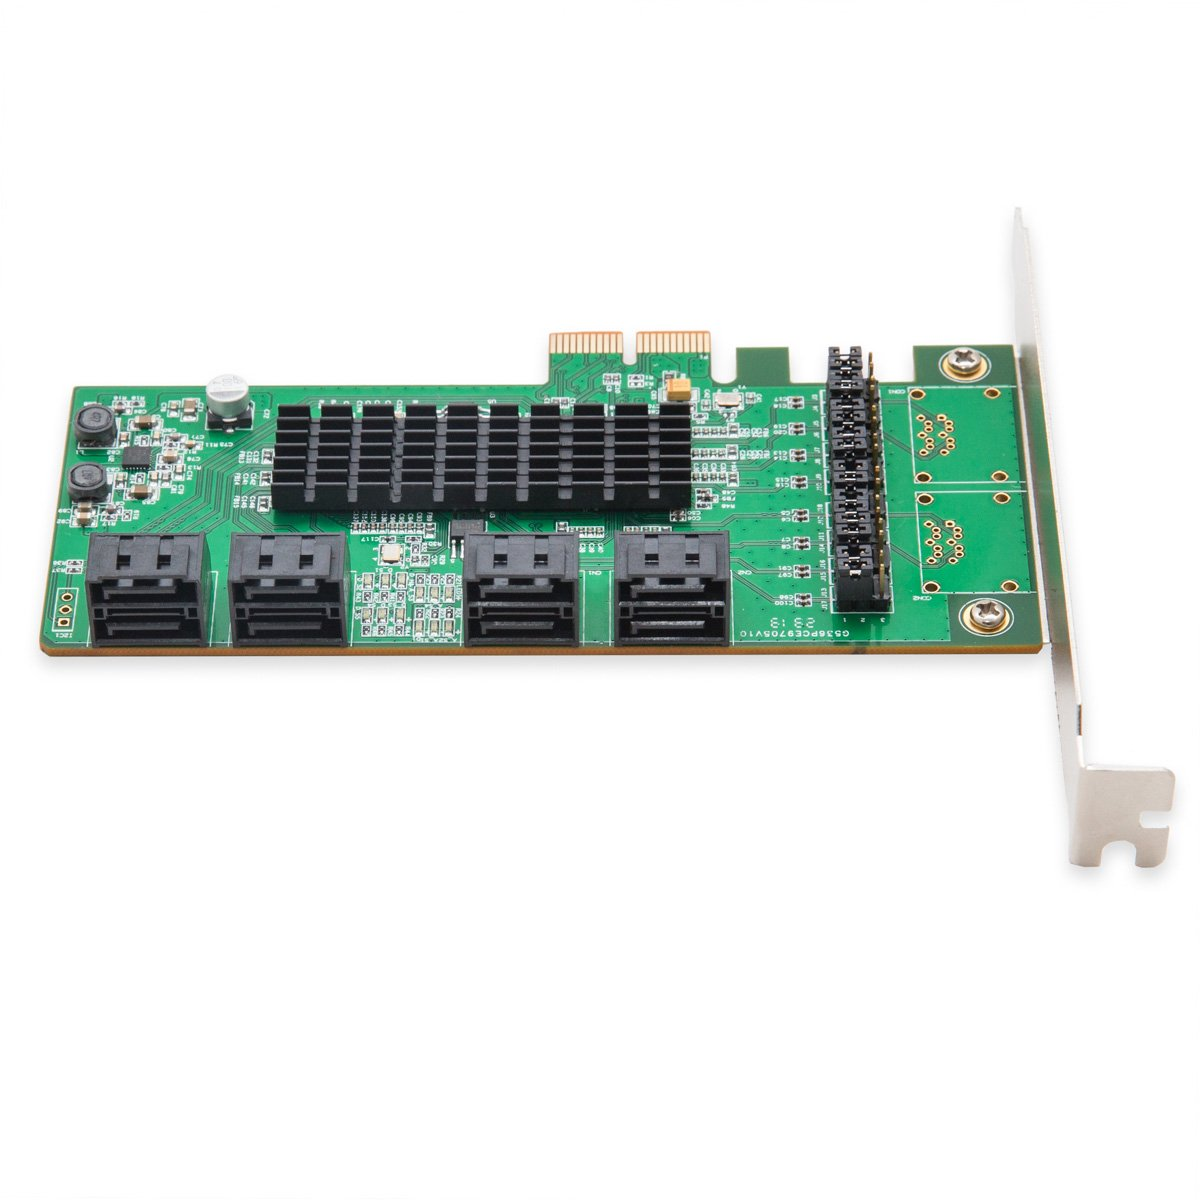 I/O Crest 8 Port SATA III PCIe 2.0 x2 Non RAID Controller Card Marvell 88SE9705 Chipset High Speed by IO Crest (Image #3)